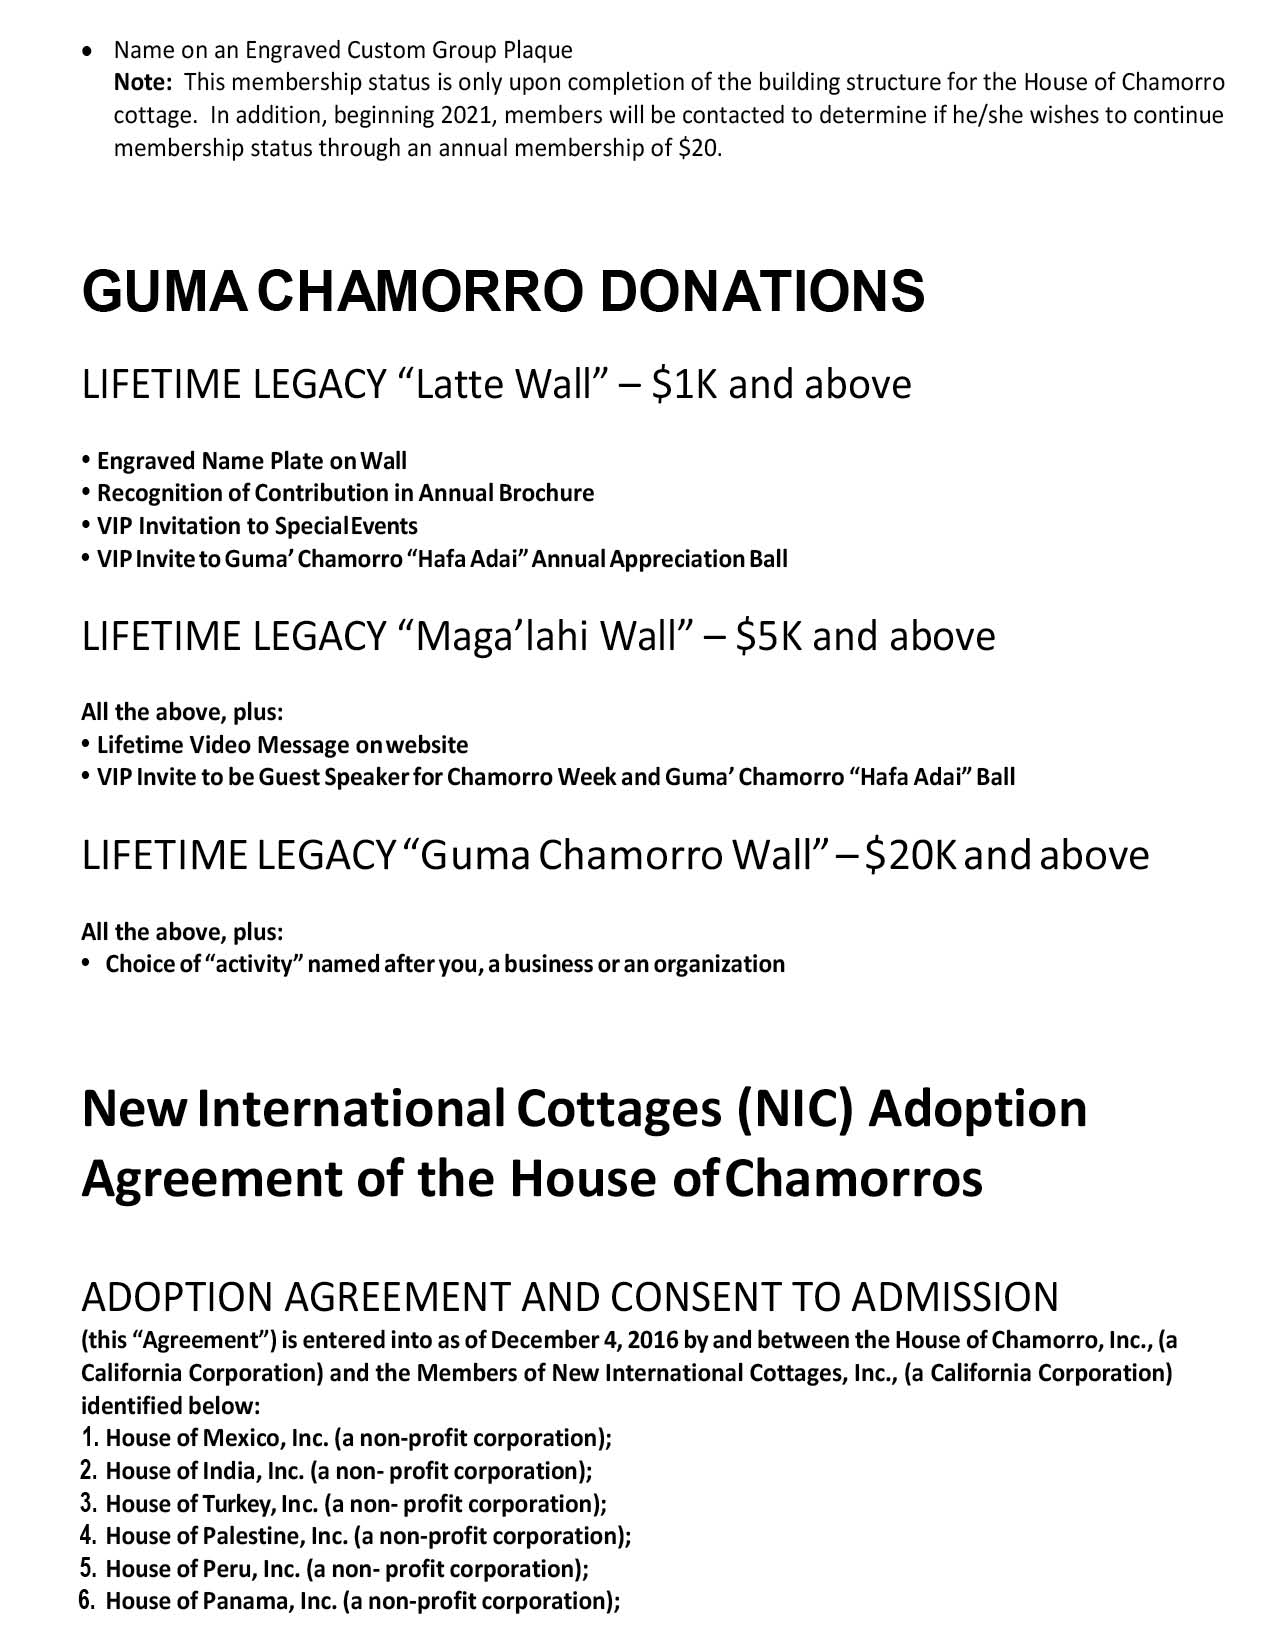 House of Chamorros